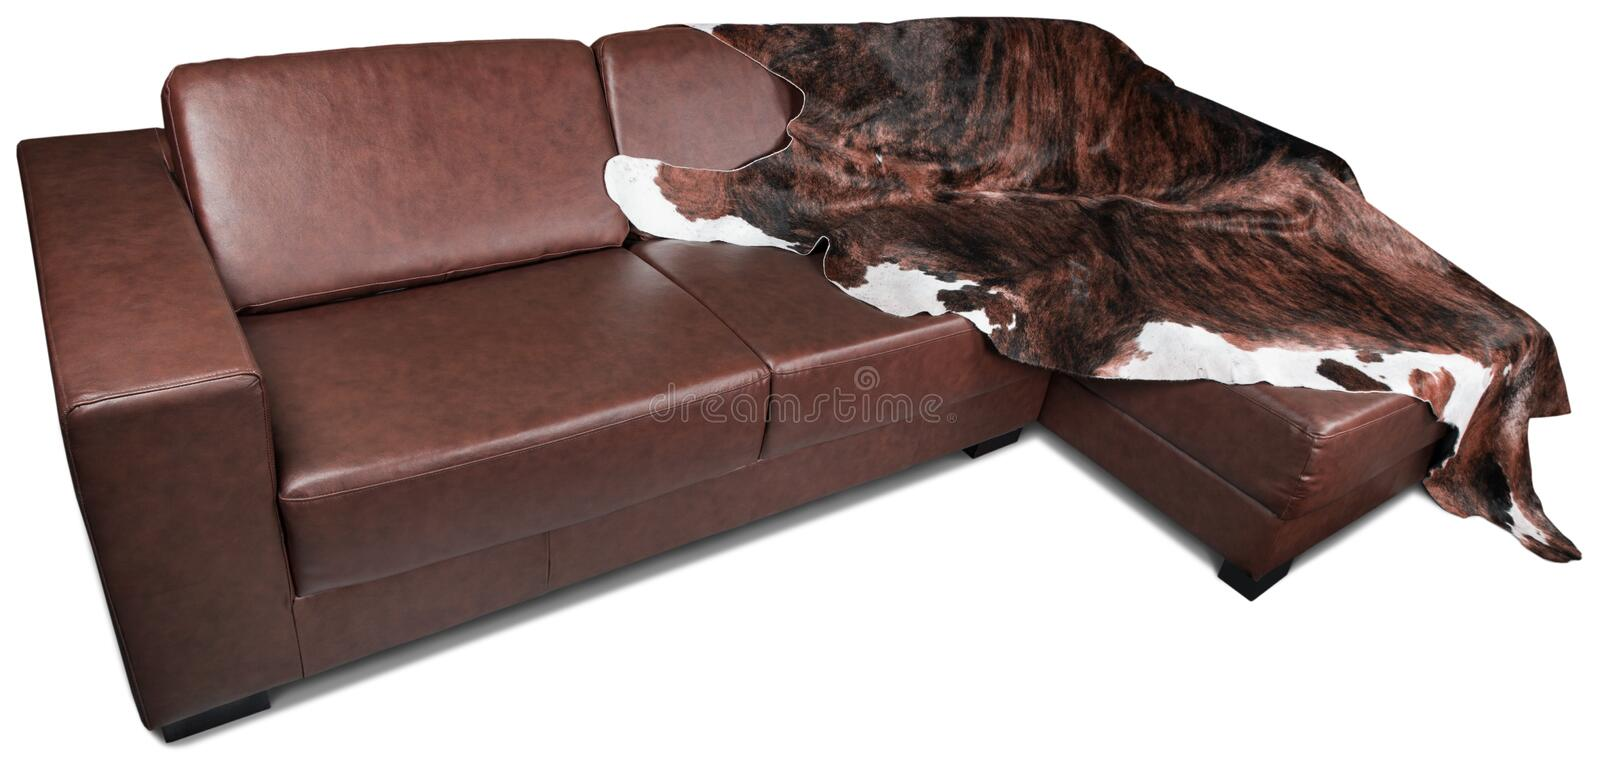 Brown Leather corner Sofa with Furry Blanket - royalty free stock image